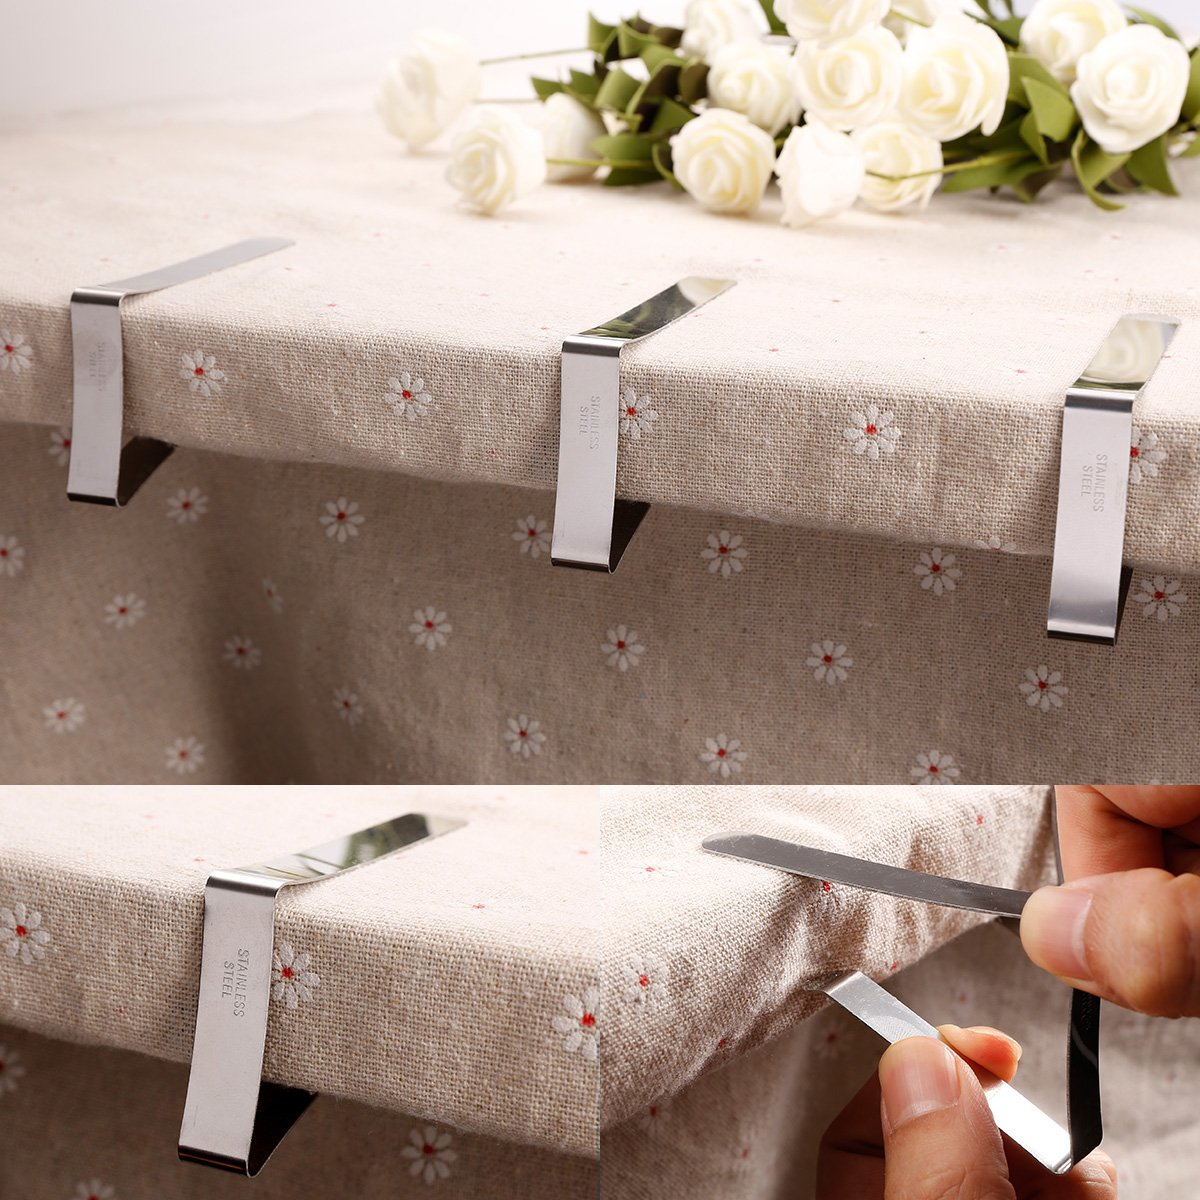 12PCS, Silver Anladia 12PCS 20PCS Tablecloth Clips Stainless Steel Table Cover Clamps Table Cloth Holders